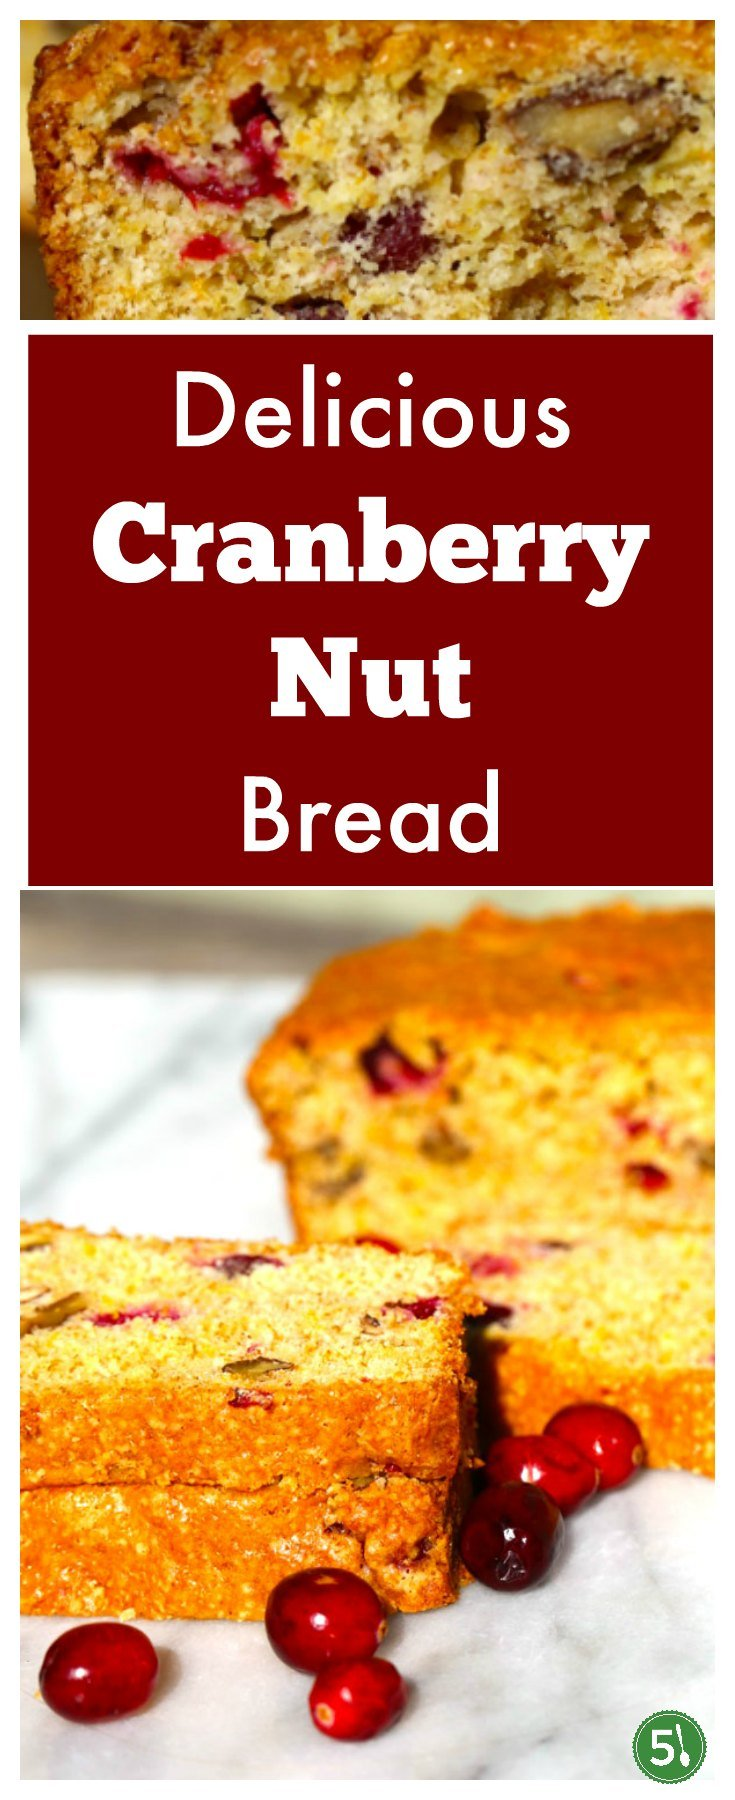 Cranberry Nut Bread recipe that is bursting with flavorful fresh ingredients including plump cranberries, orange zest, orange juice, and chopped pecans.  This is a tried and true recipe I've been enjoying for the Holidays for decades.